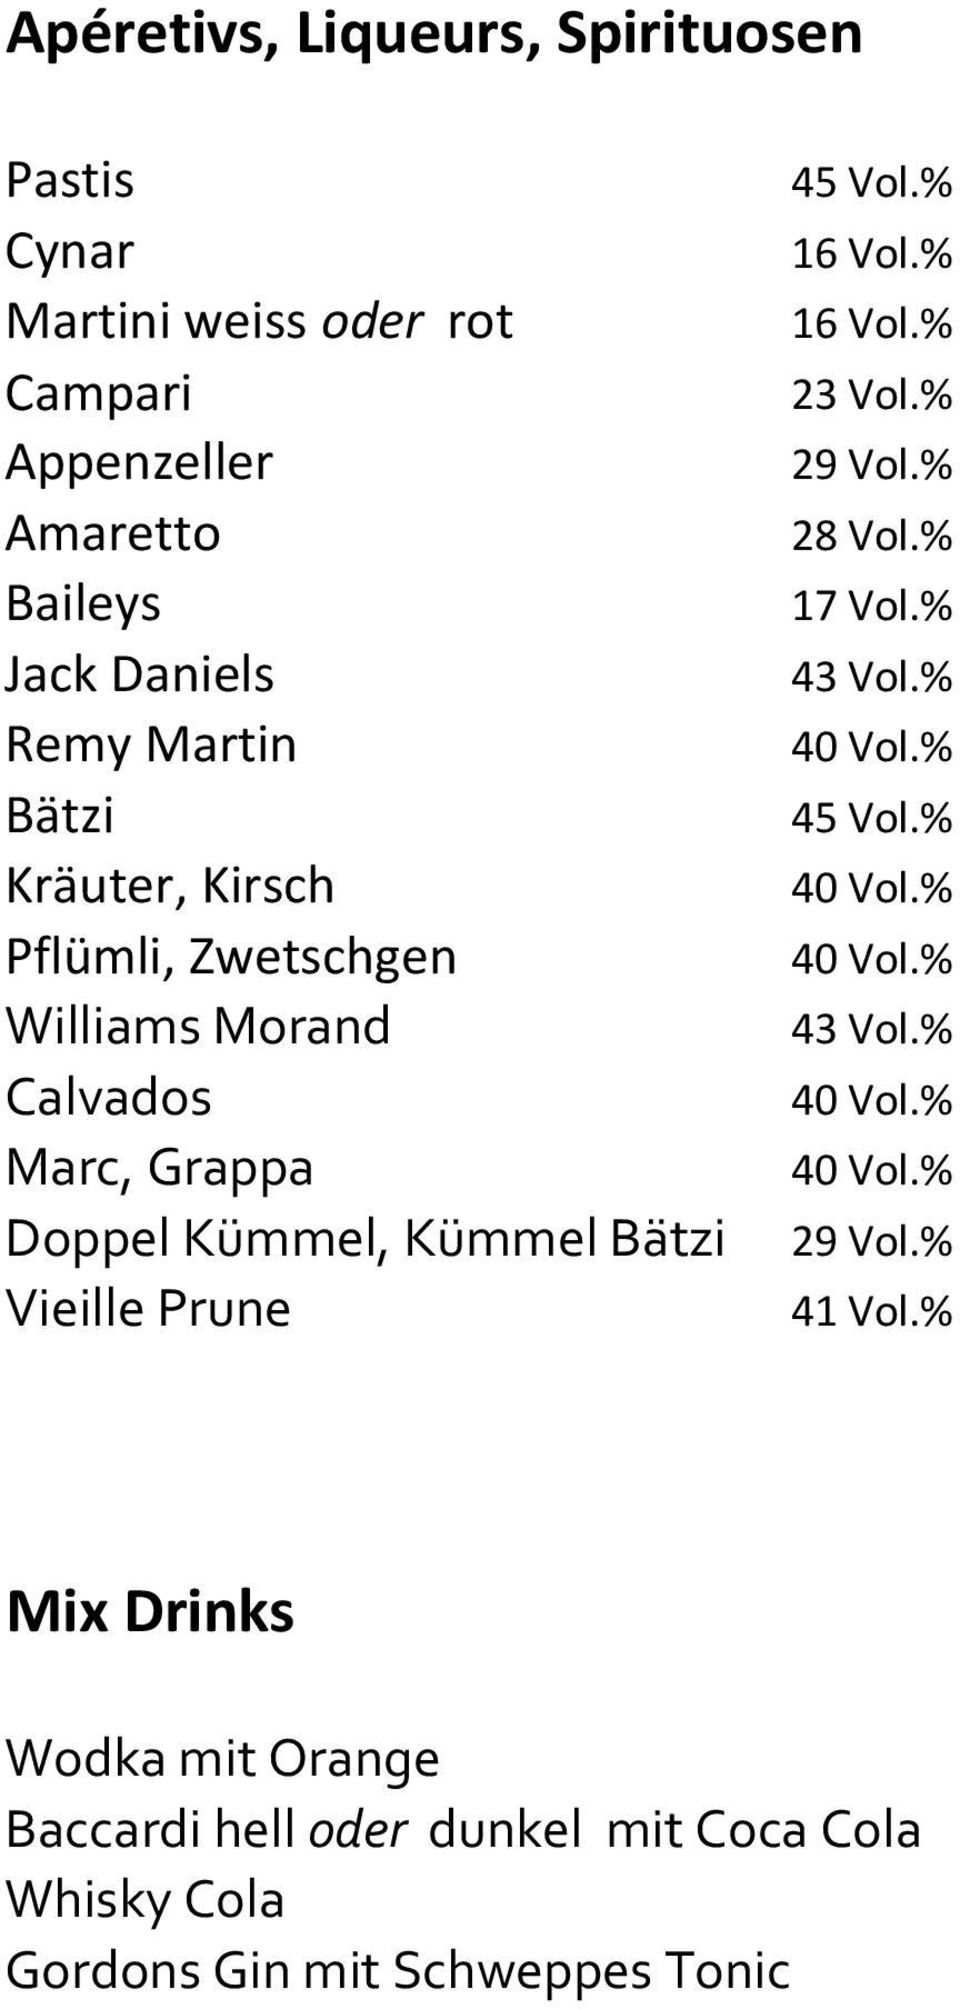 % Kräuter, Kirsch 40 Vol.% Pflümli, Zwetschgen 40 Vol.% Williams Morand 43 Vol.% Calvados 40 Vol.% Marc, Grappa 40 Vol.